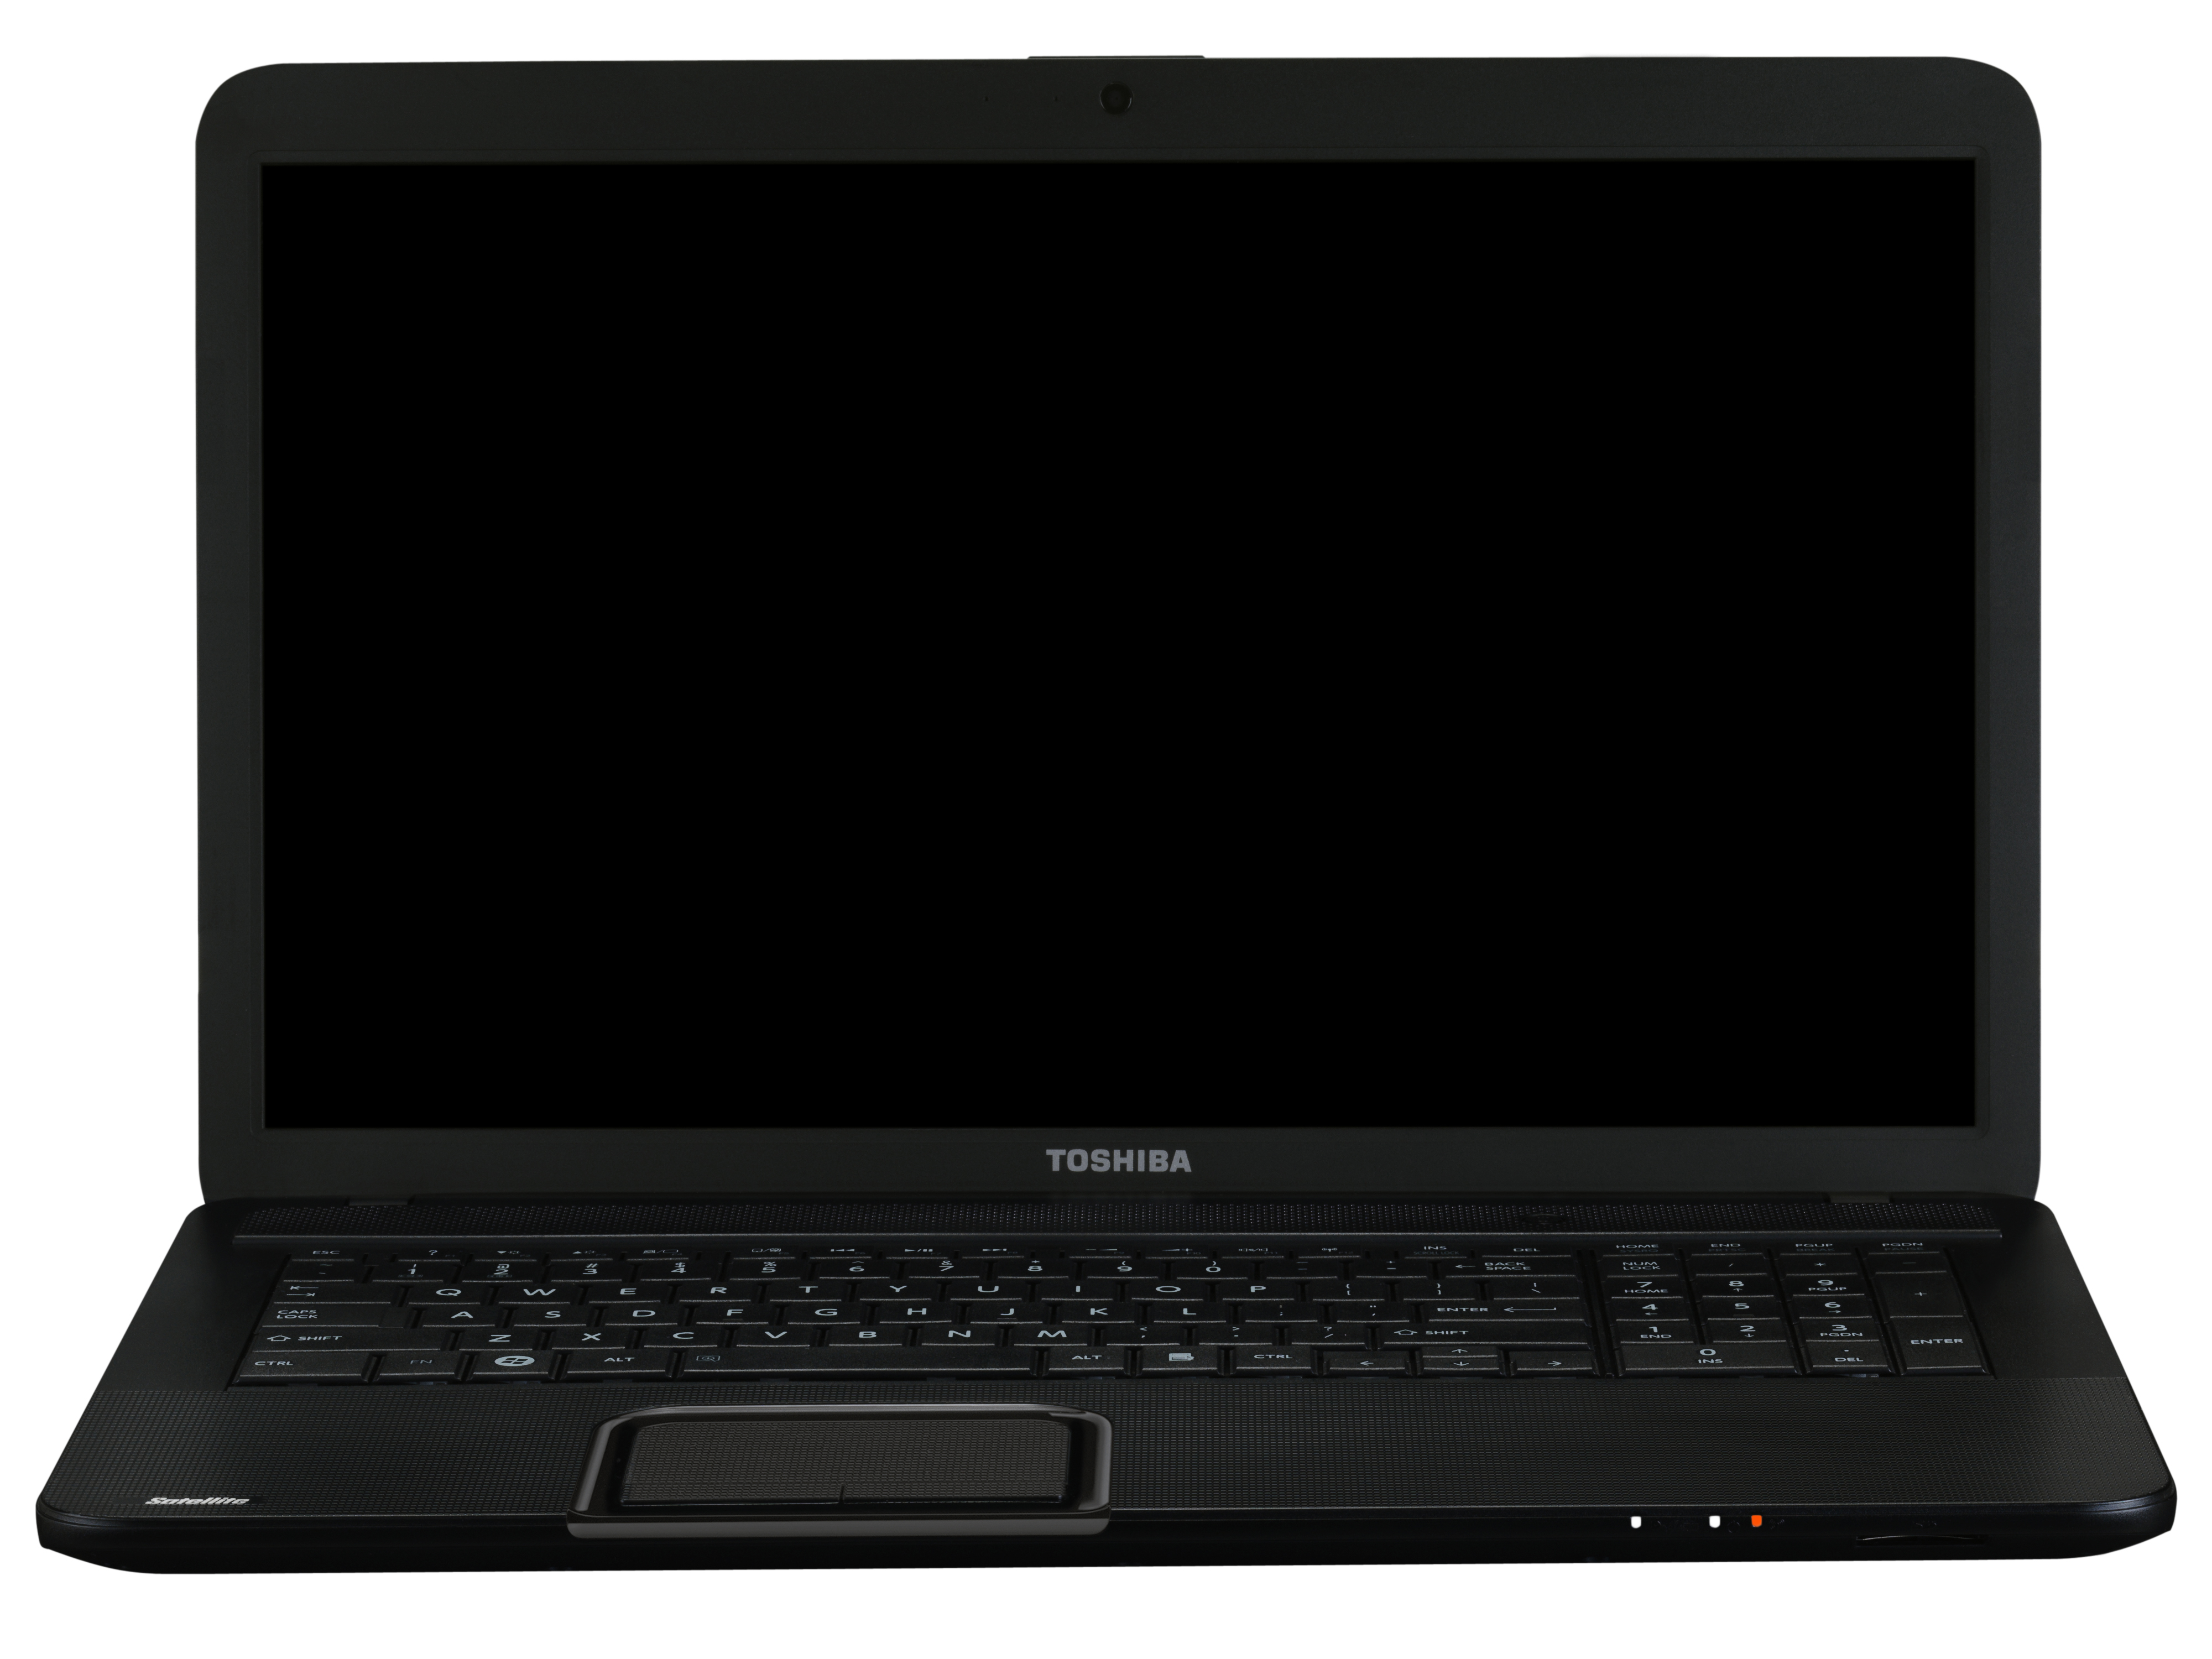 Download Toshiba Satellite C850d Drivers